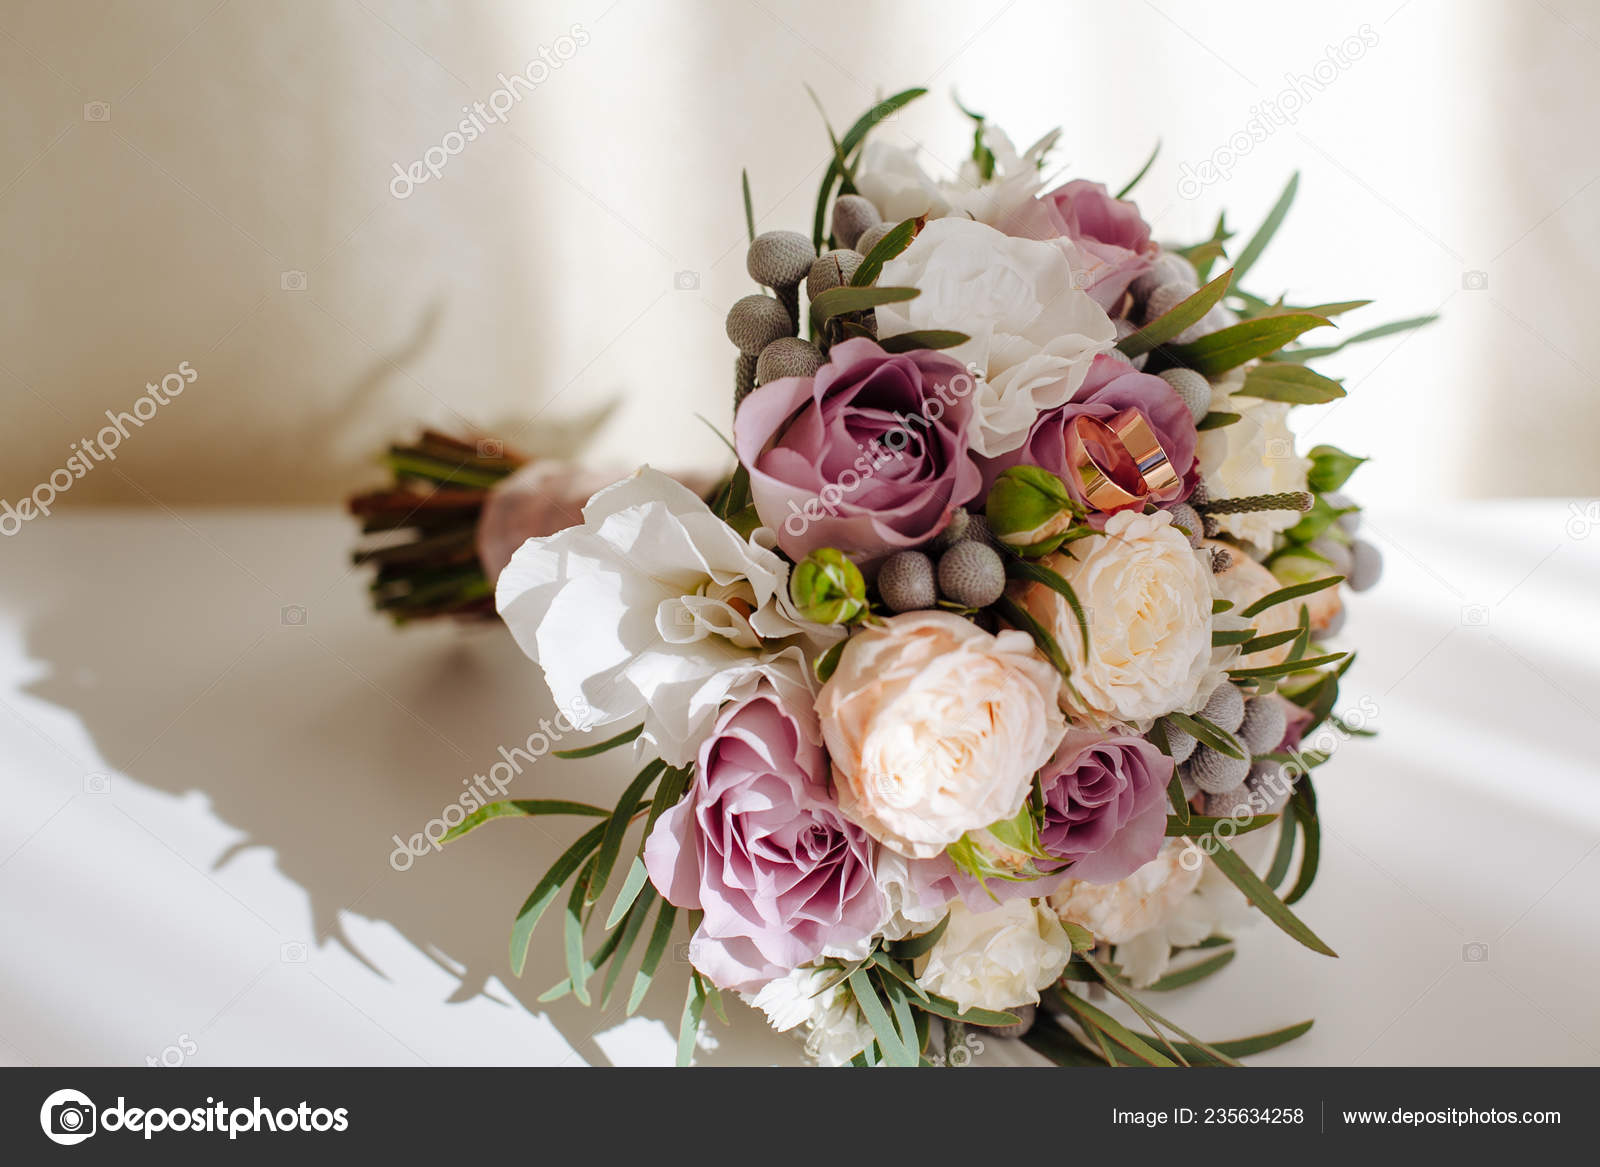 Bouquet Sposa Rose E Peonie.Soft Tender Bridal Bouquet Roses Peonies Greenery White Table